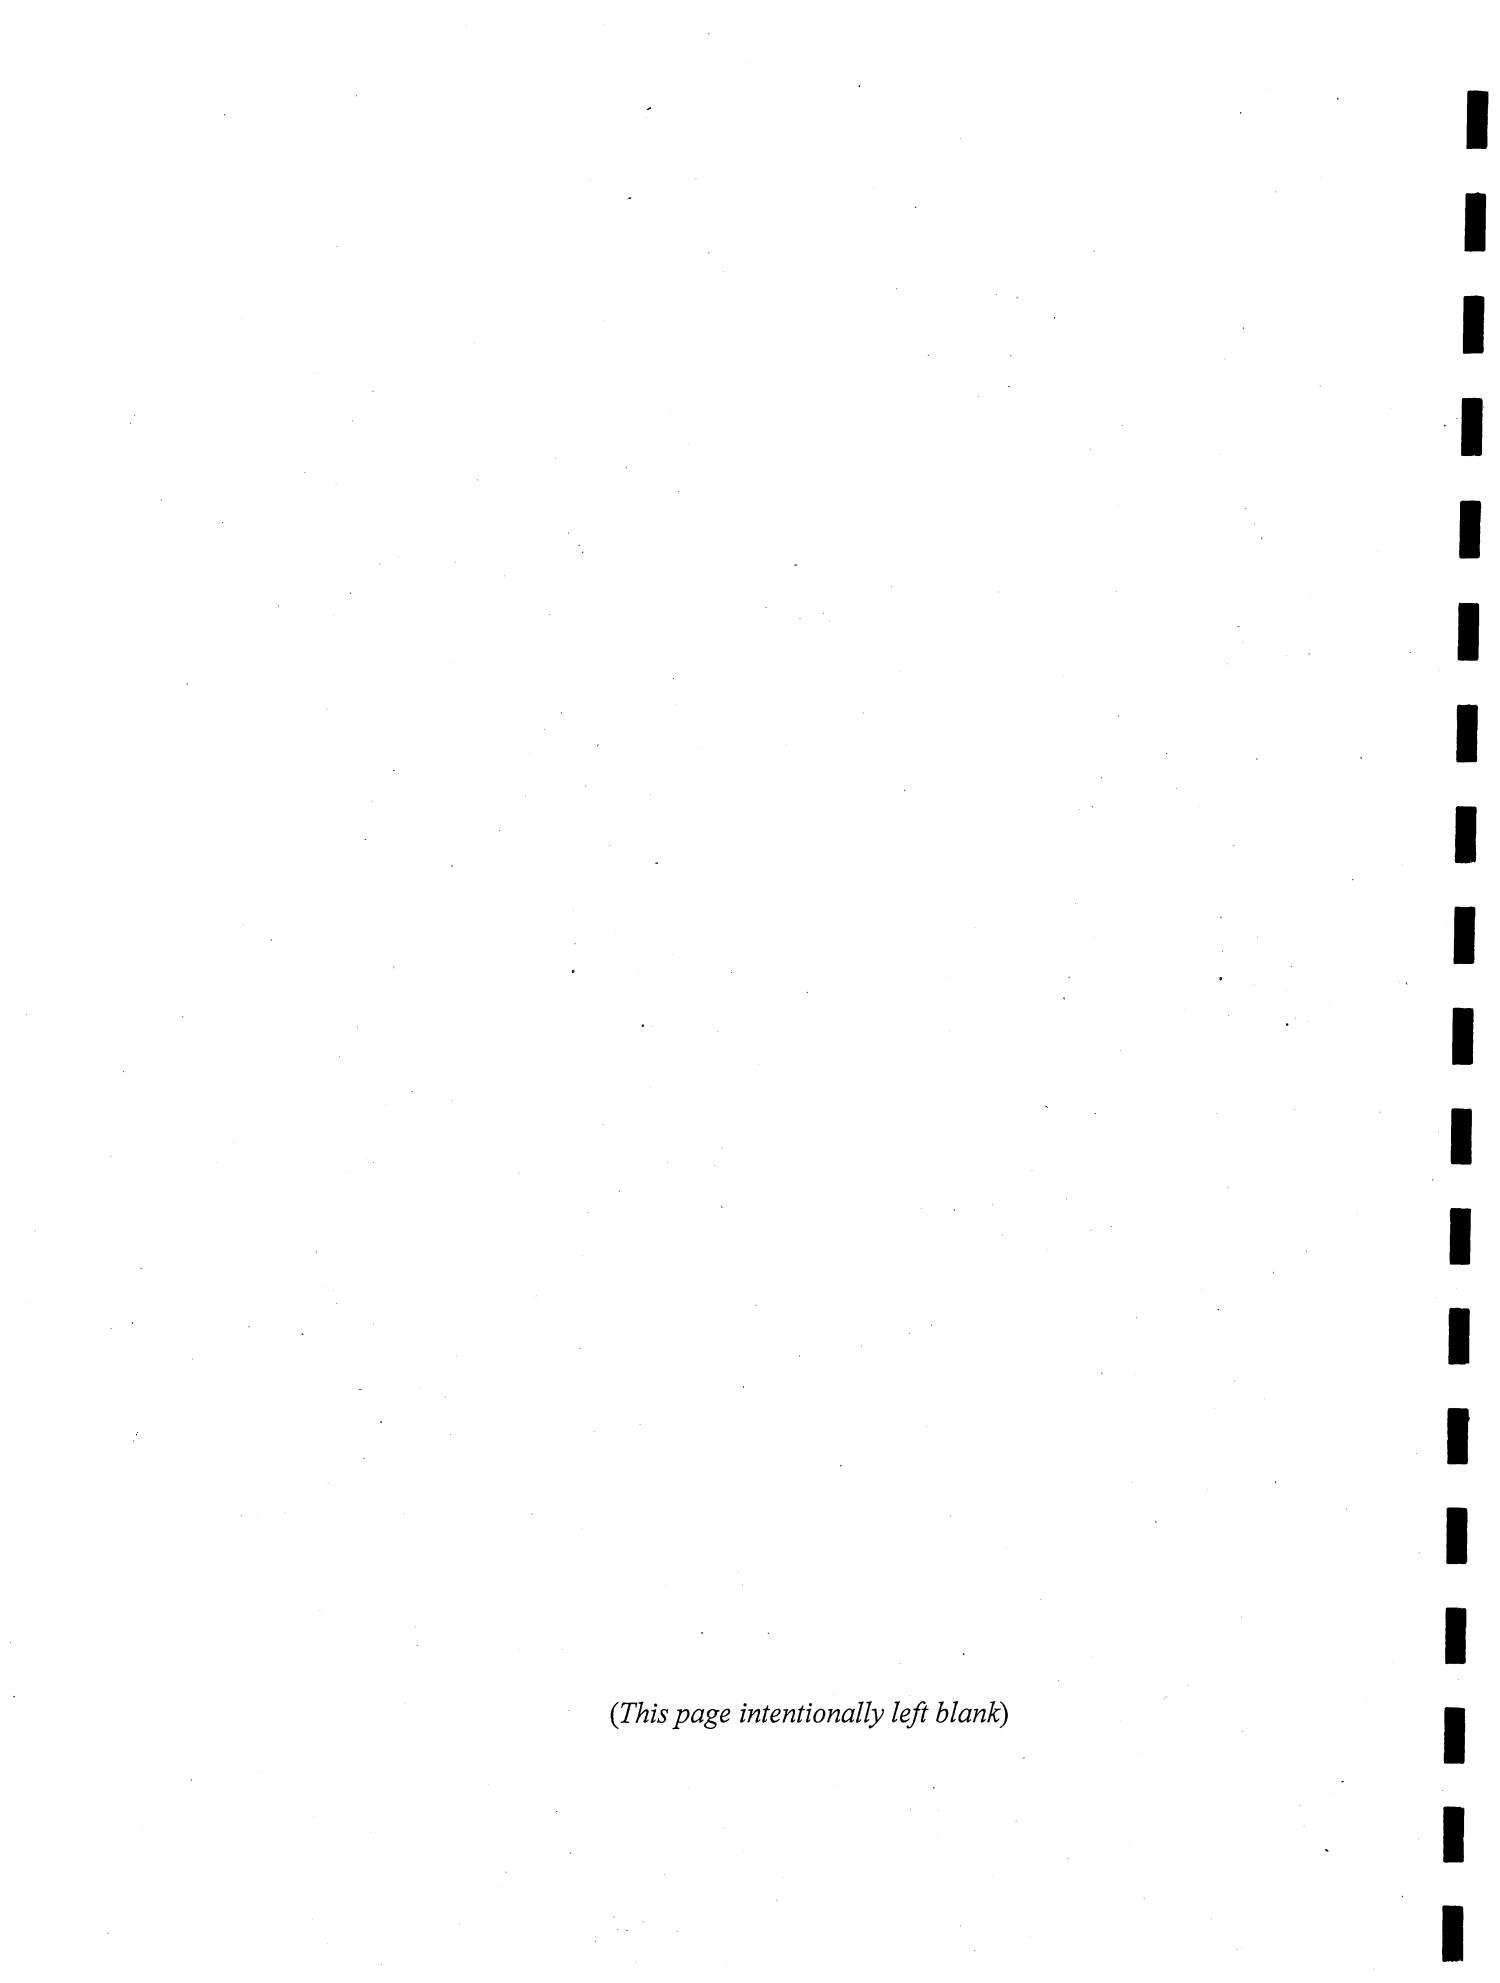 Texas Southern University Annual Financial Report: 2015                                                                                                      Blank